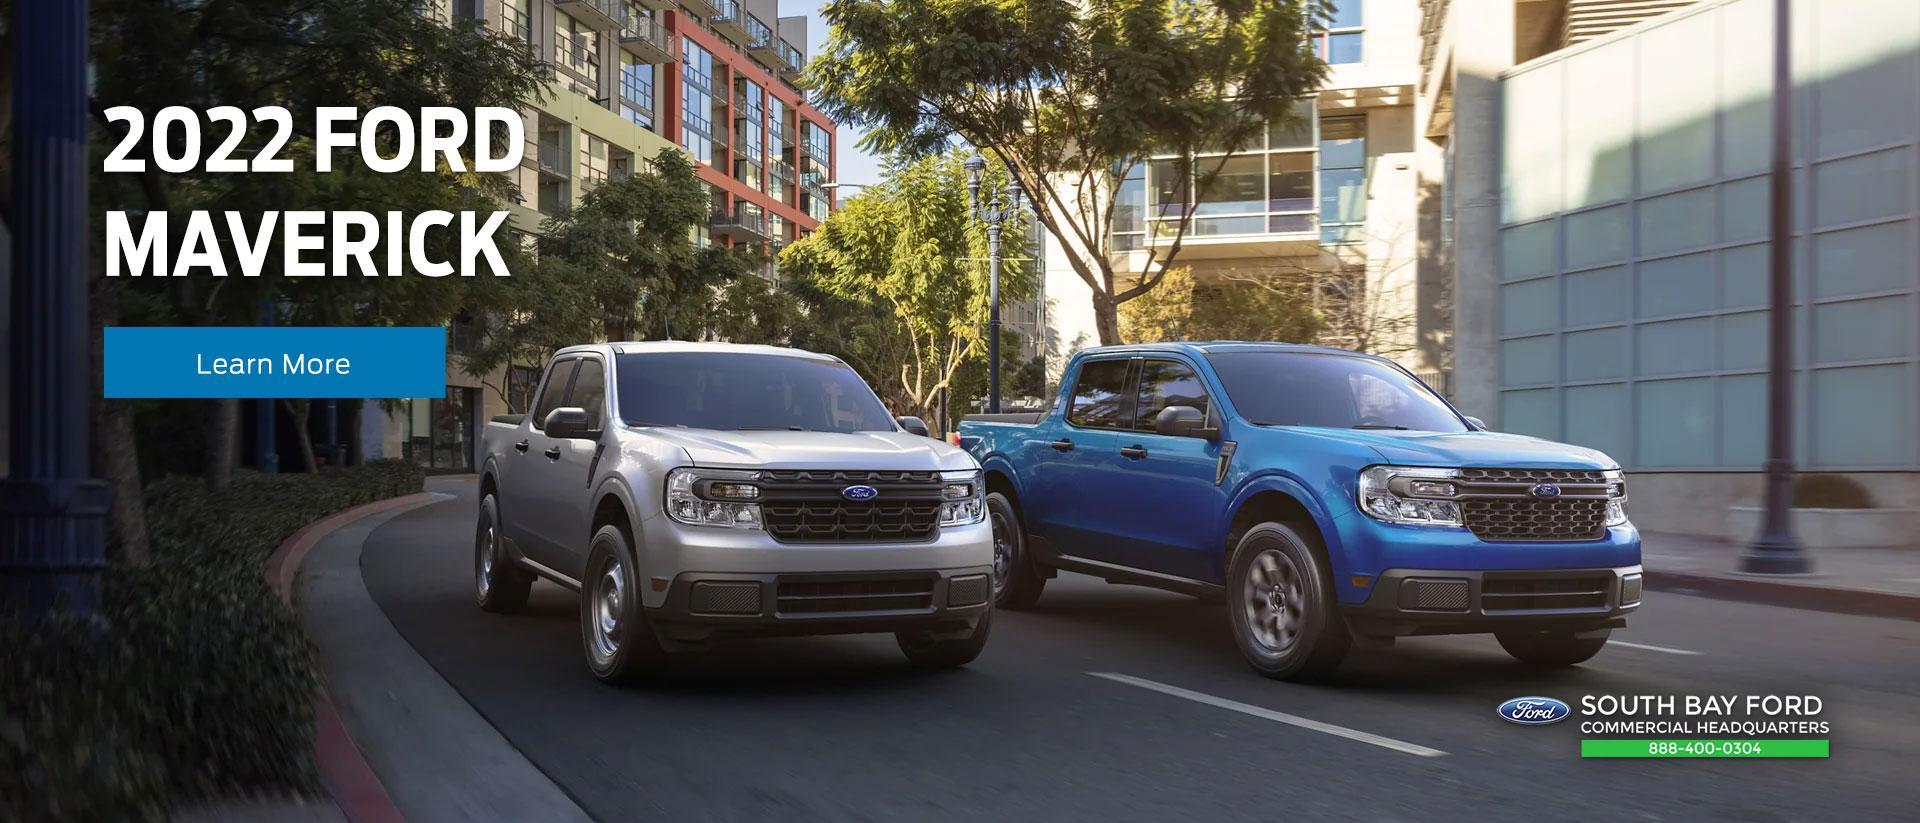 2022 Ford Maverick Truck | South Bay Ford Commercial